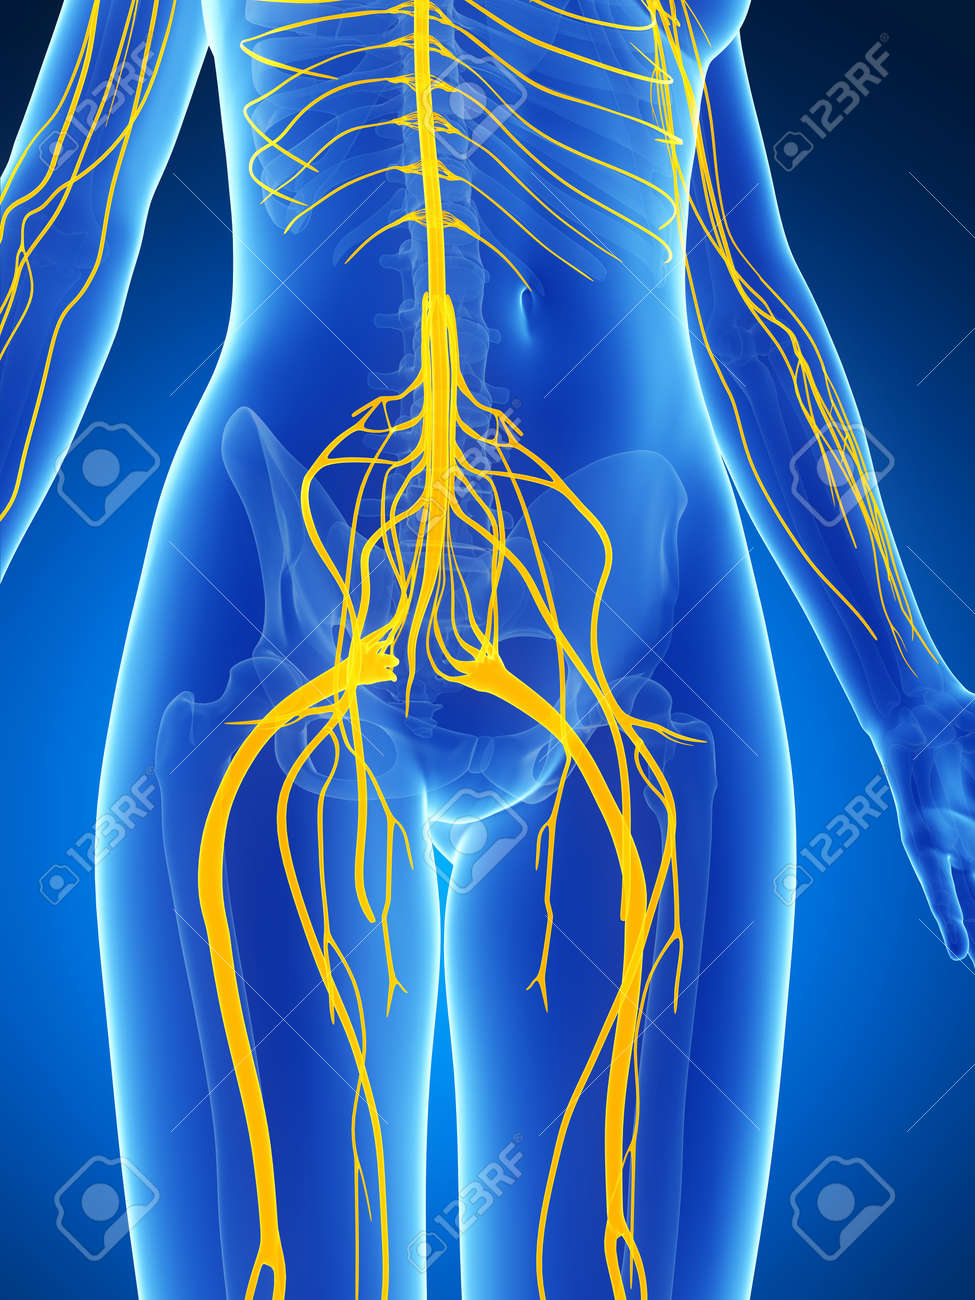 3d rendered illustration of the female nervous system Stock Photo - 18451812